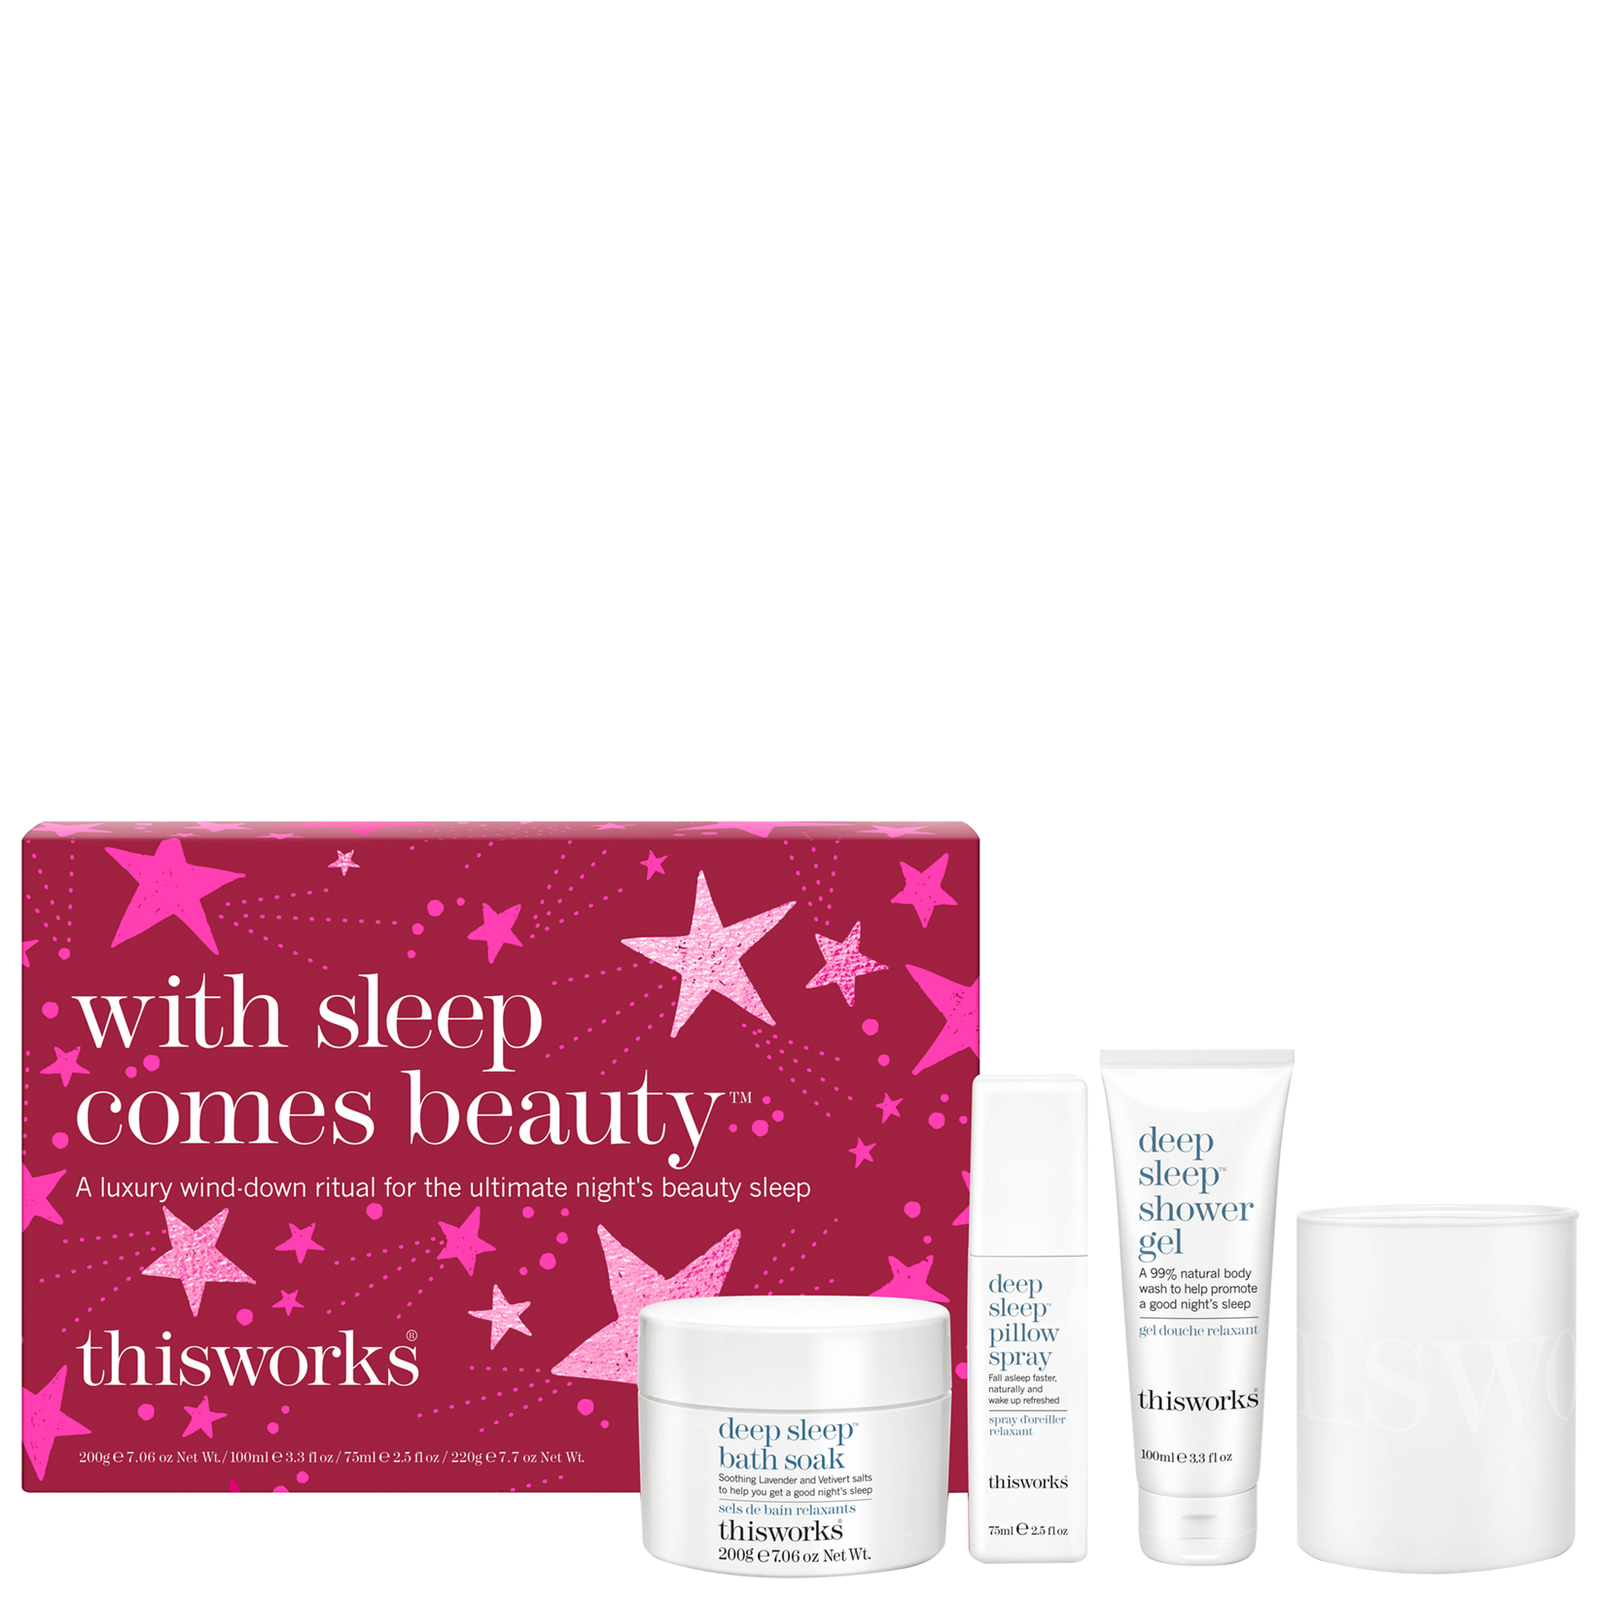 thisworks Gifts With Sleep Comes Beauty